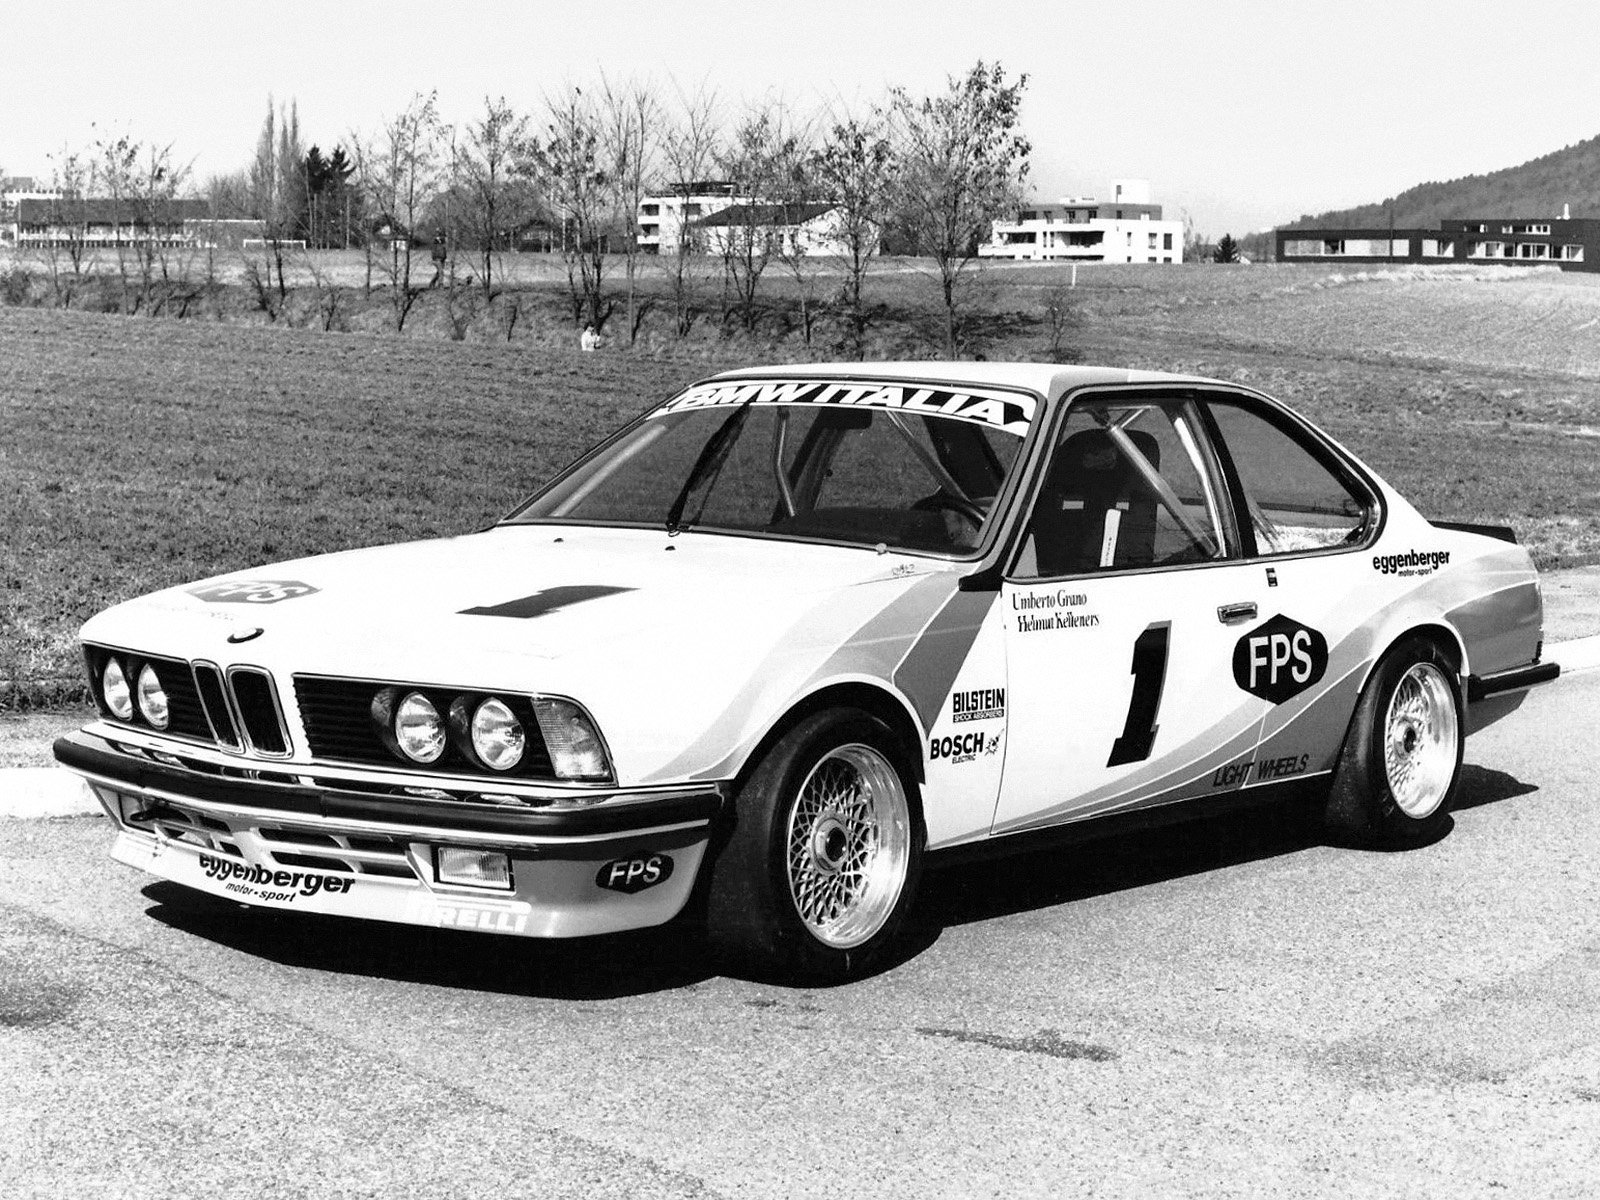 The Eggenberger Motorsport-BMW Italia 635 CSi of Helmut Kelleners and Umberto Grano shortly after completion.